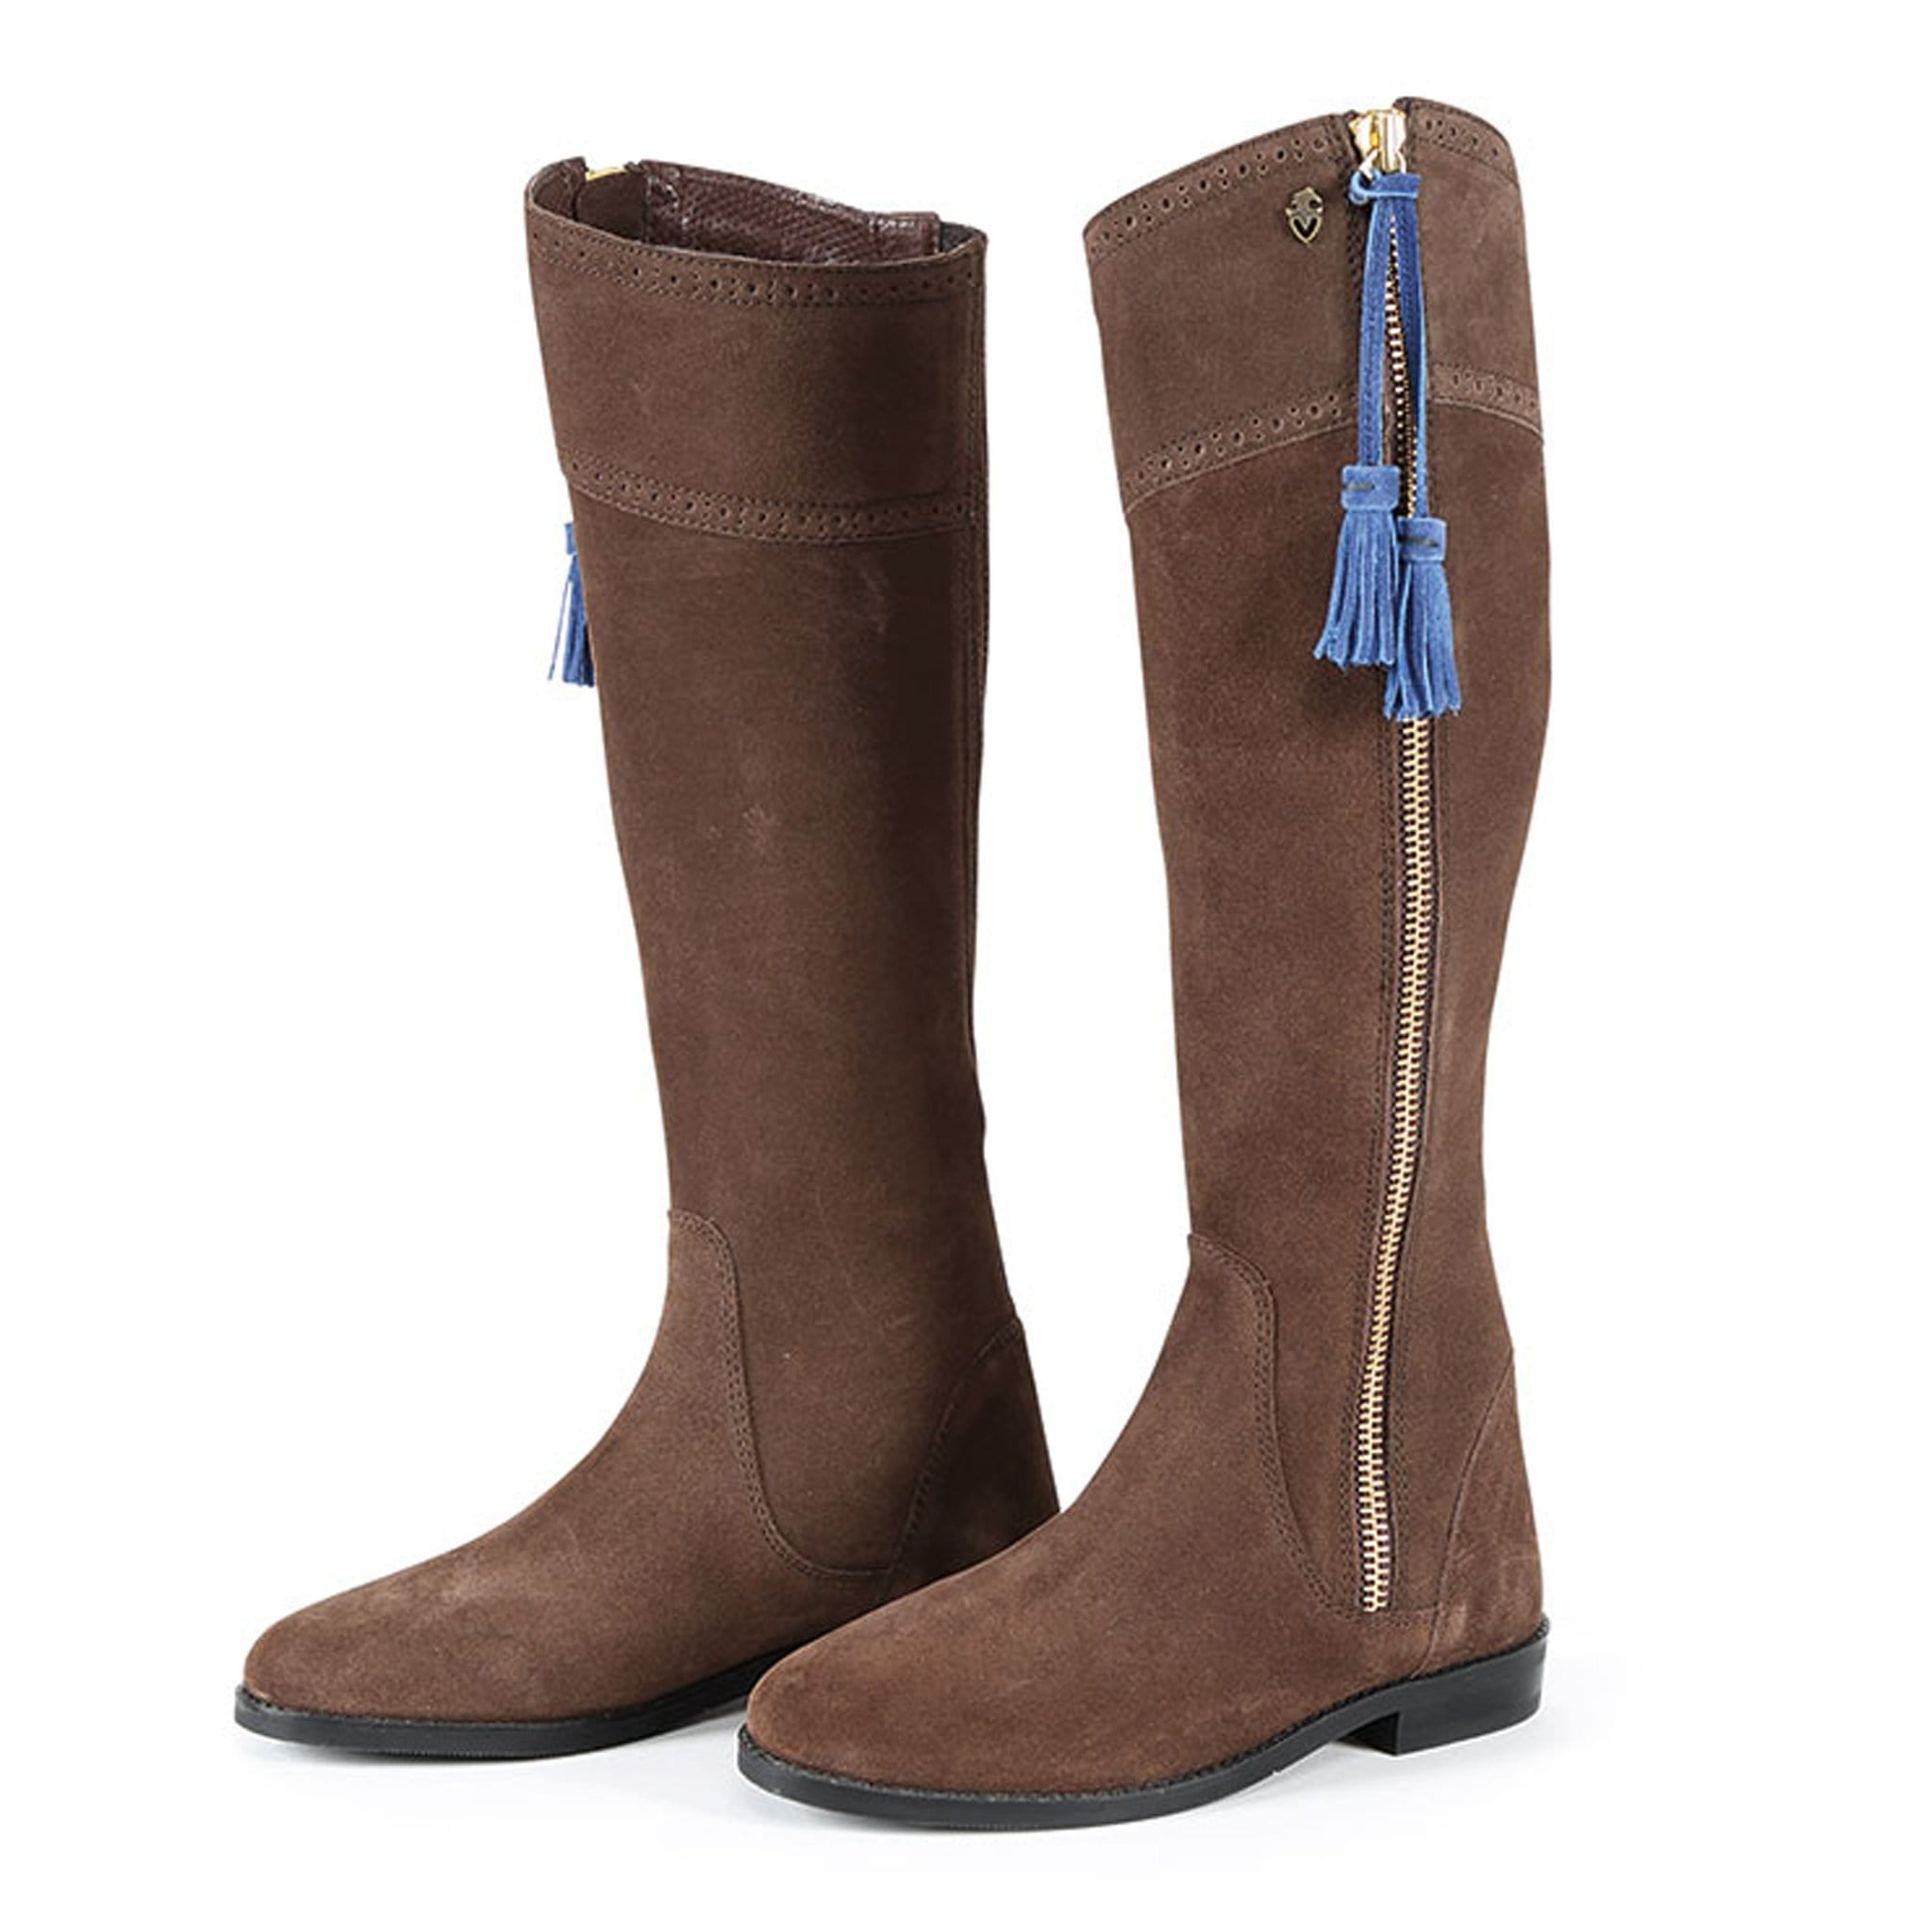 Shires Moretta Florenza Suede Boots Brown 9921.